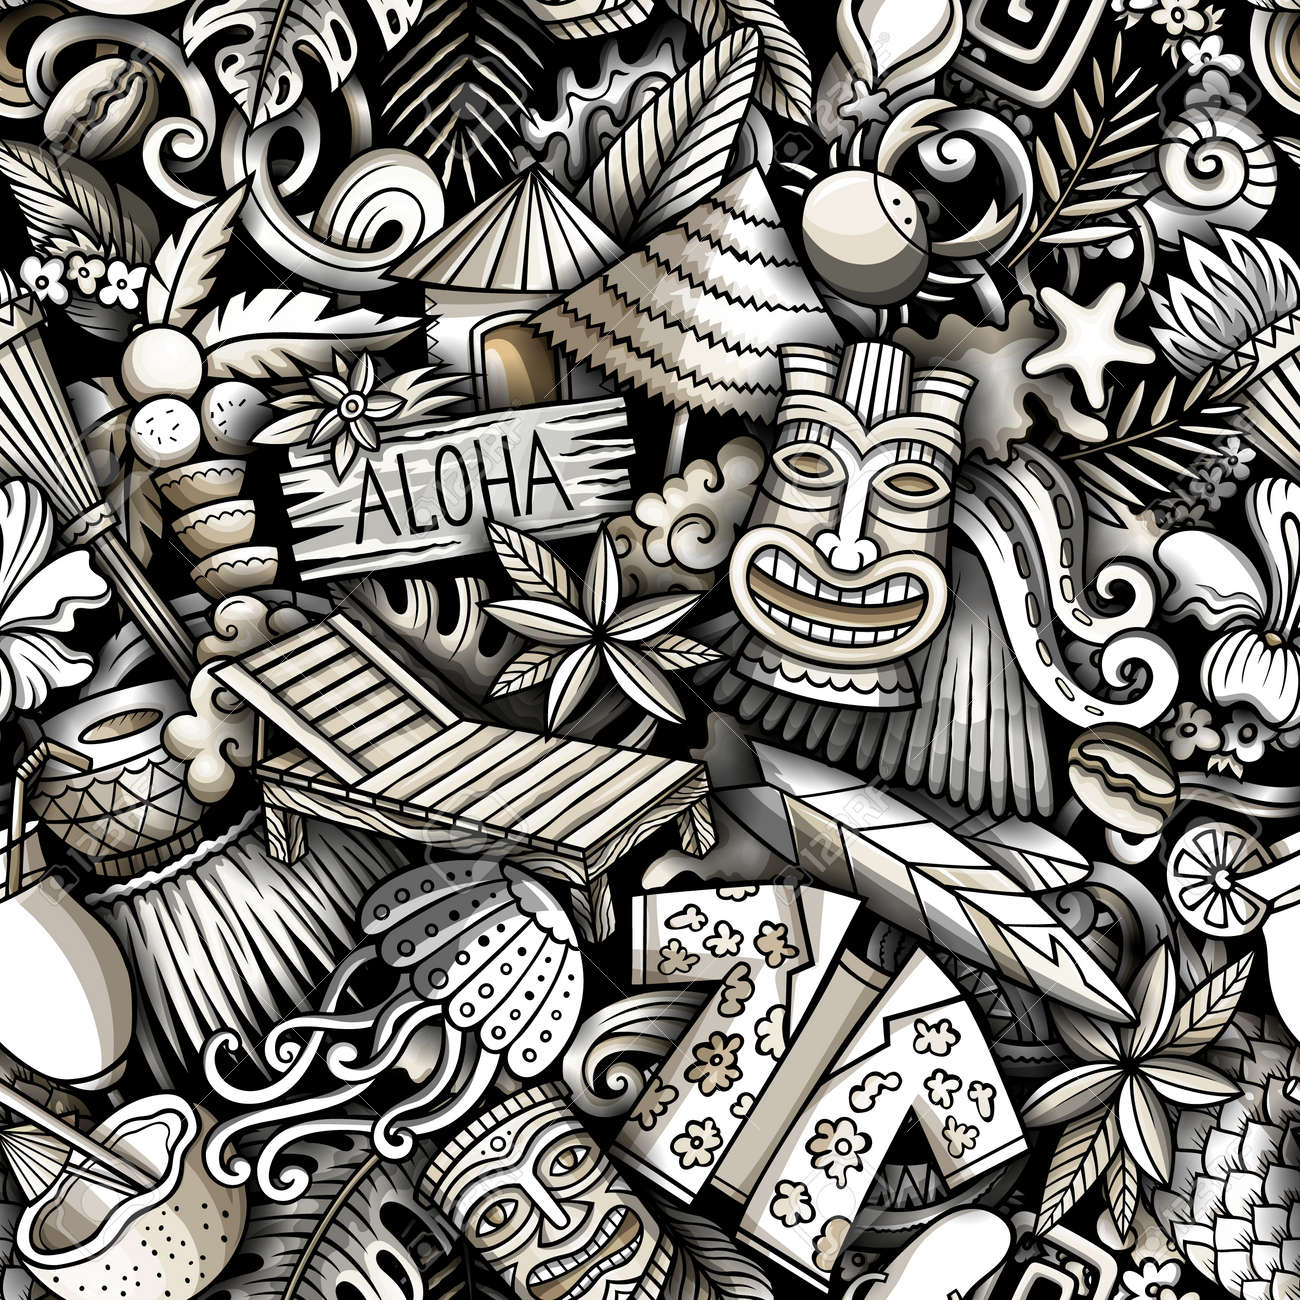 Cartoon doodles Hawaii seamless pattern. Backdrop with Hawaiian culture symbols and items. Monochrome detailed, with lots of objects background for print on fabric, textile, phone cases, wrapping paper. - 167836390